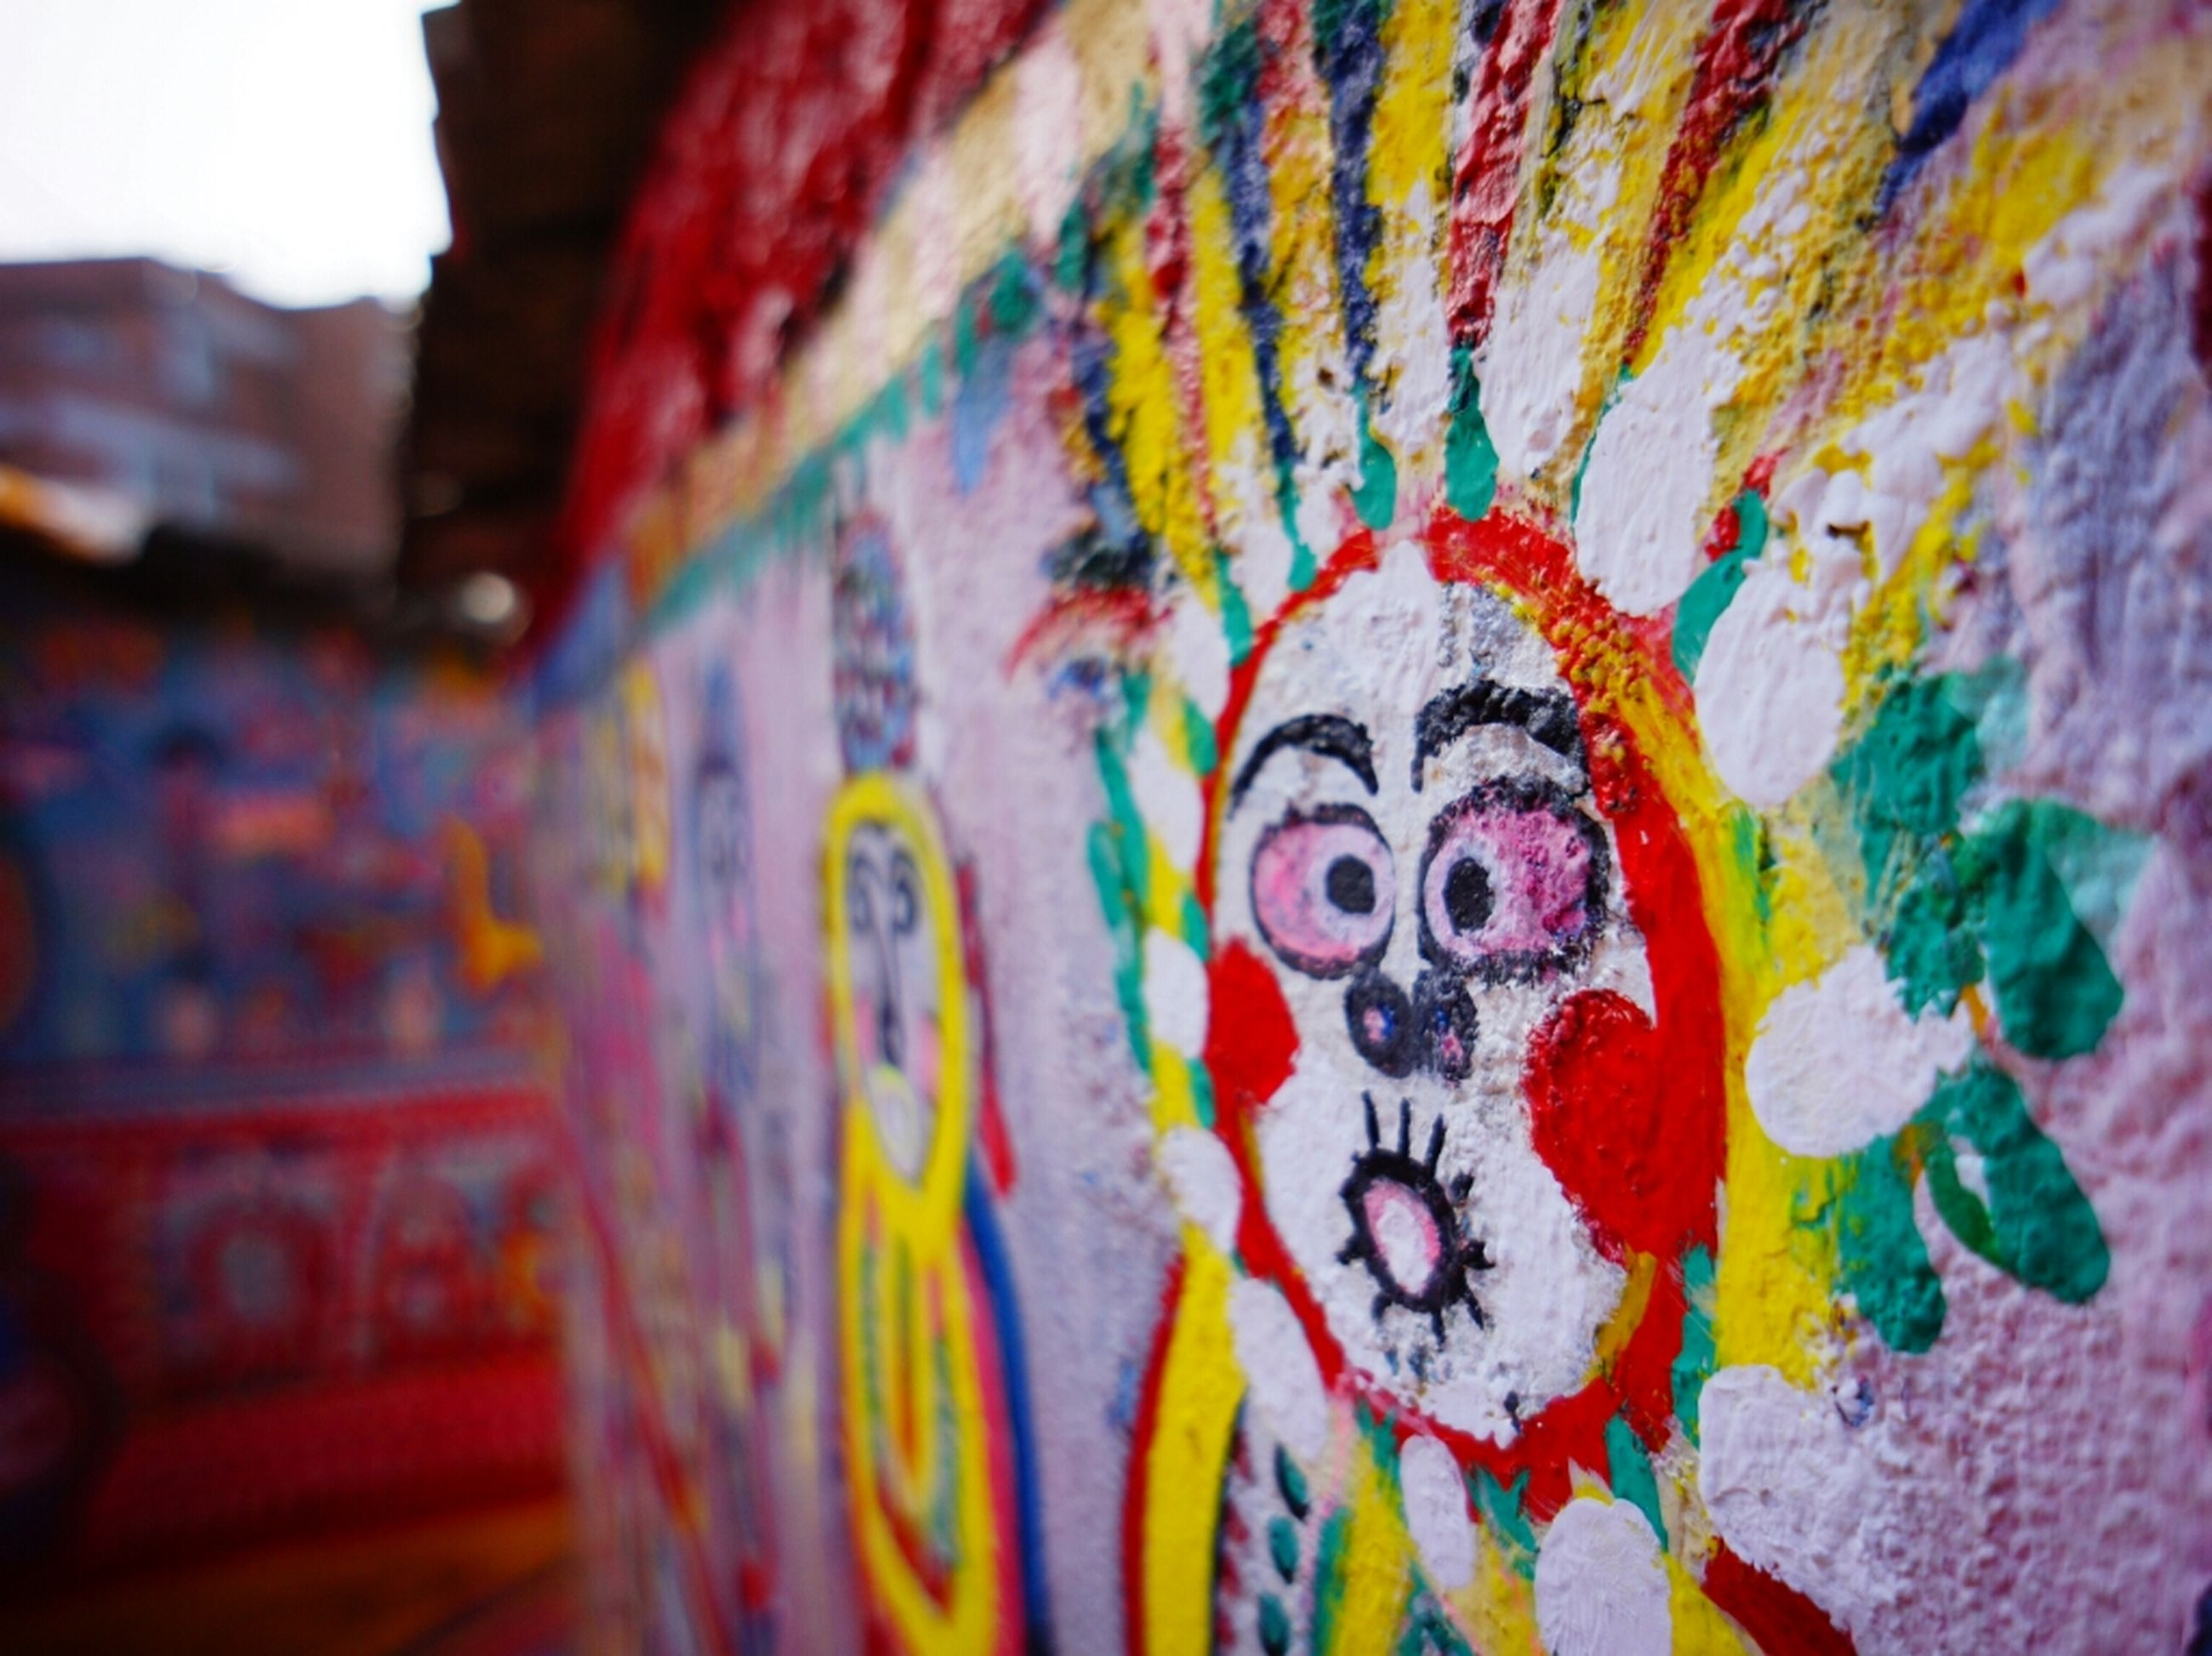 art, creativity, art and craft, graffiti, multi colored, indoors, wall - building feature, built structure, architecture, design, close-up, pattern, human representation, wall, painting, no people, floral pattern, textured, text, day